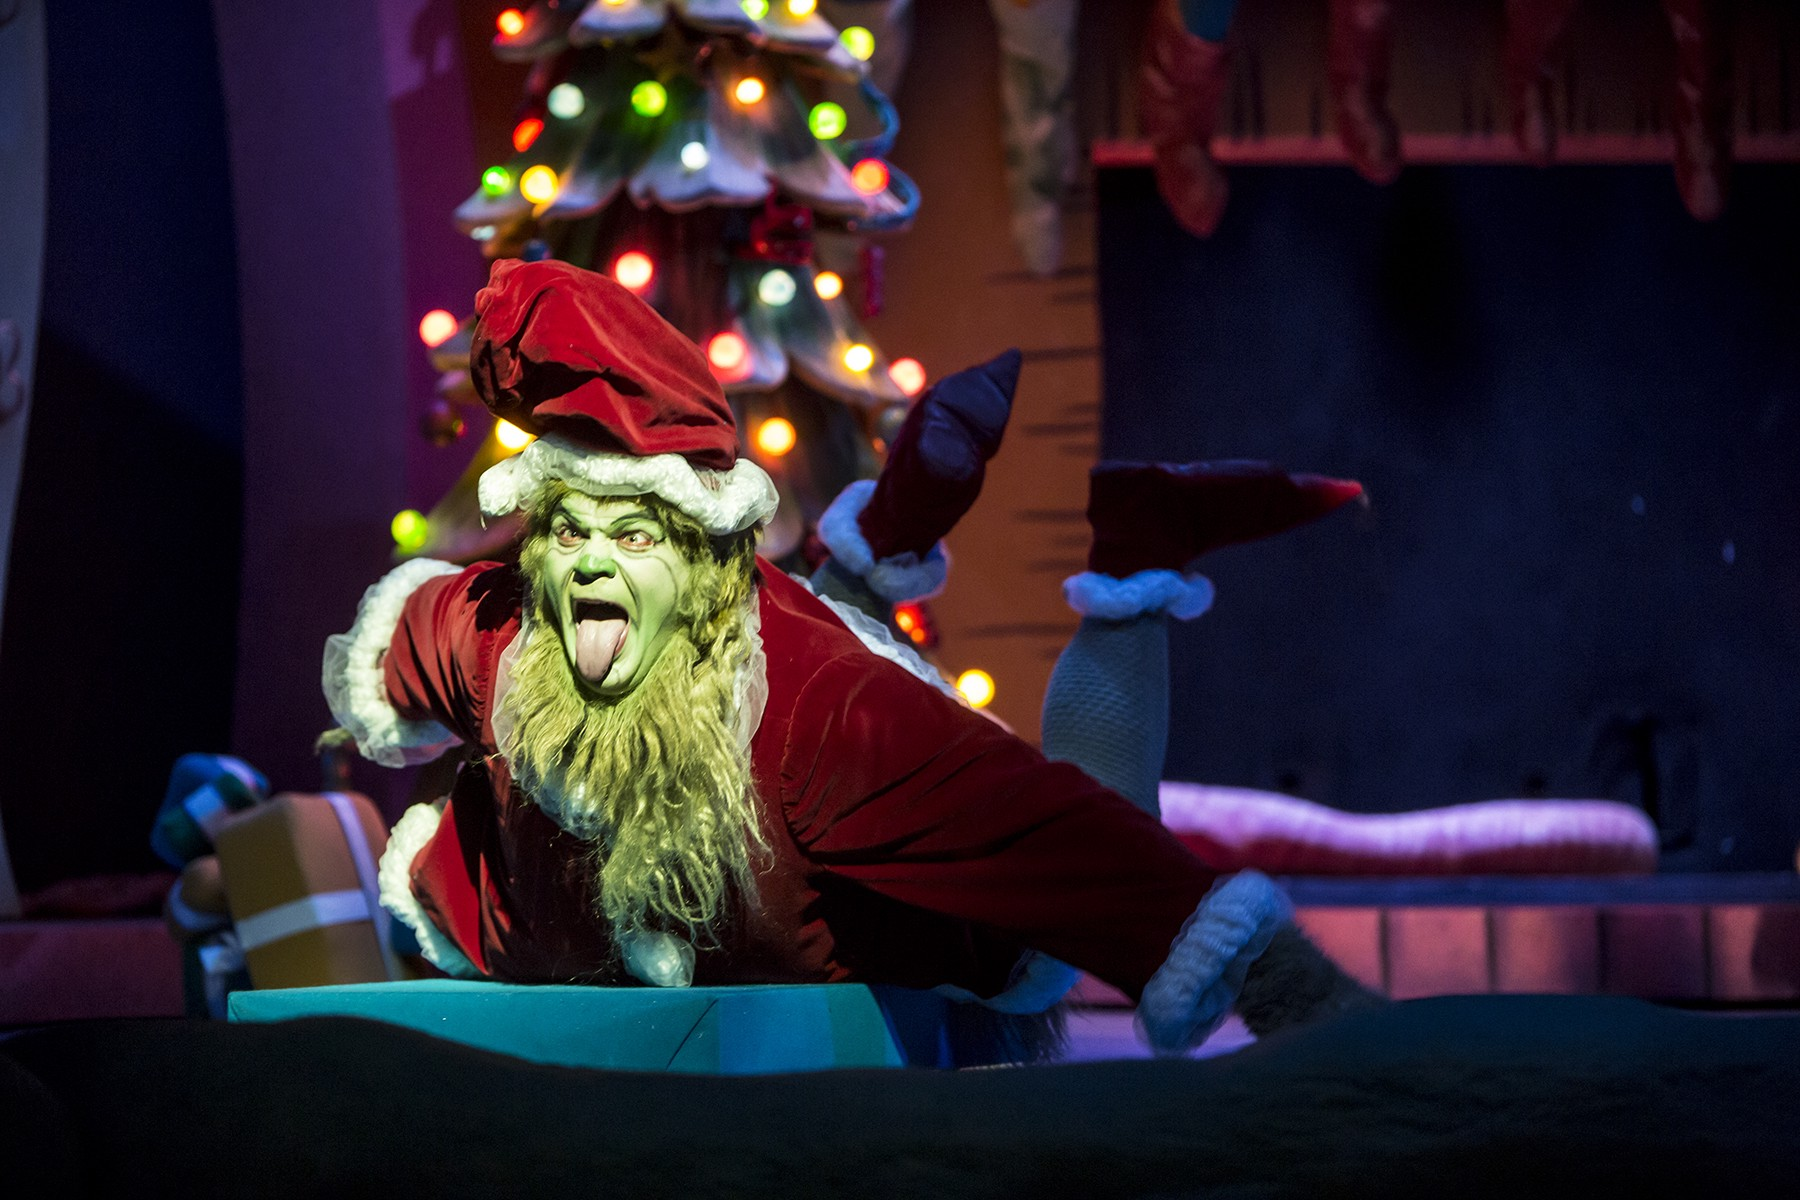 How The Grinch Stole Christmas Cindy Lou Dad.Cast Announcement For Dr Seuss S How The Grinch Stole